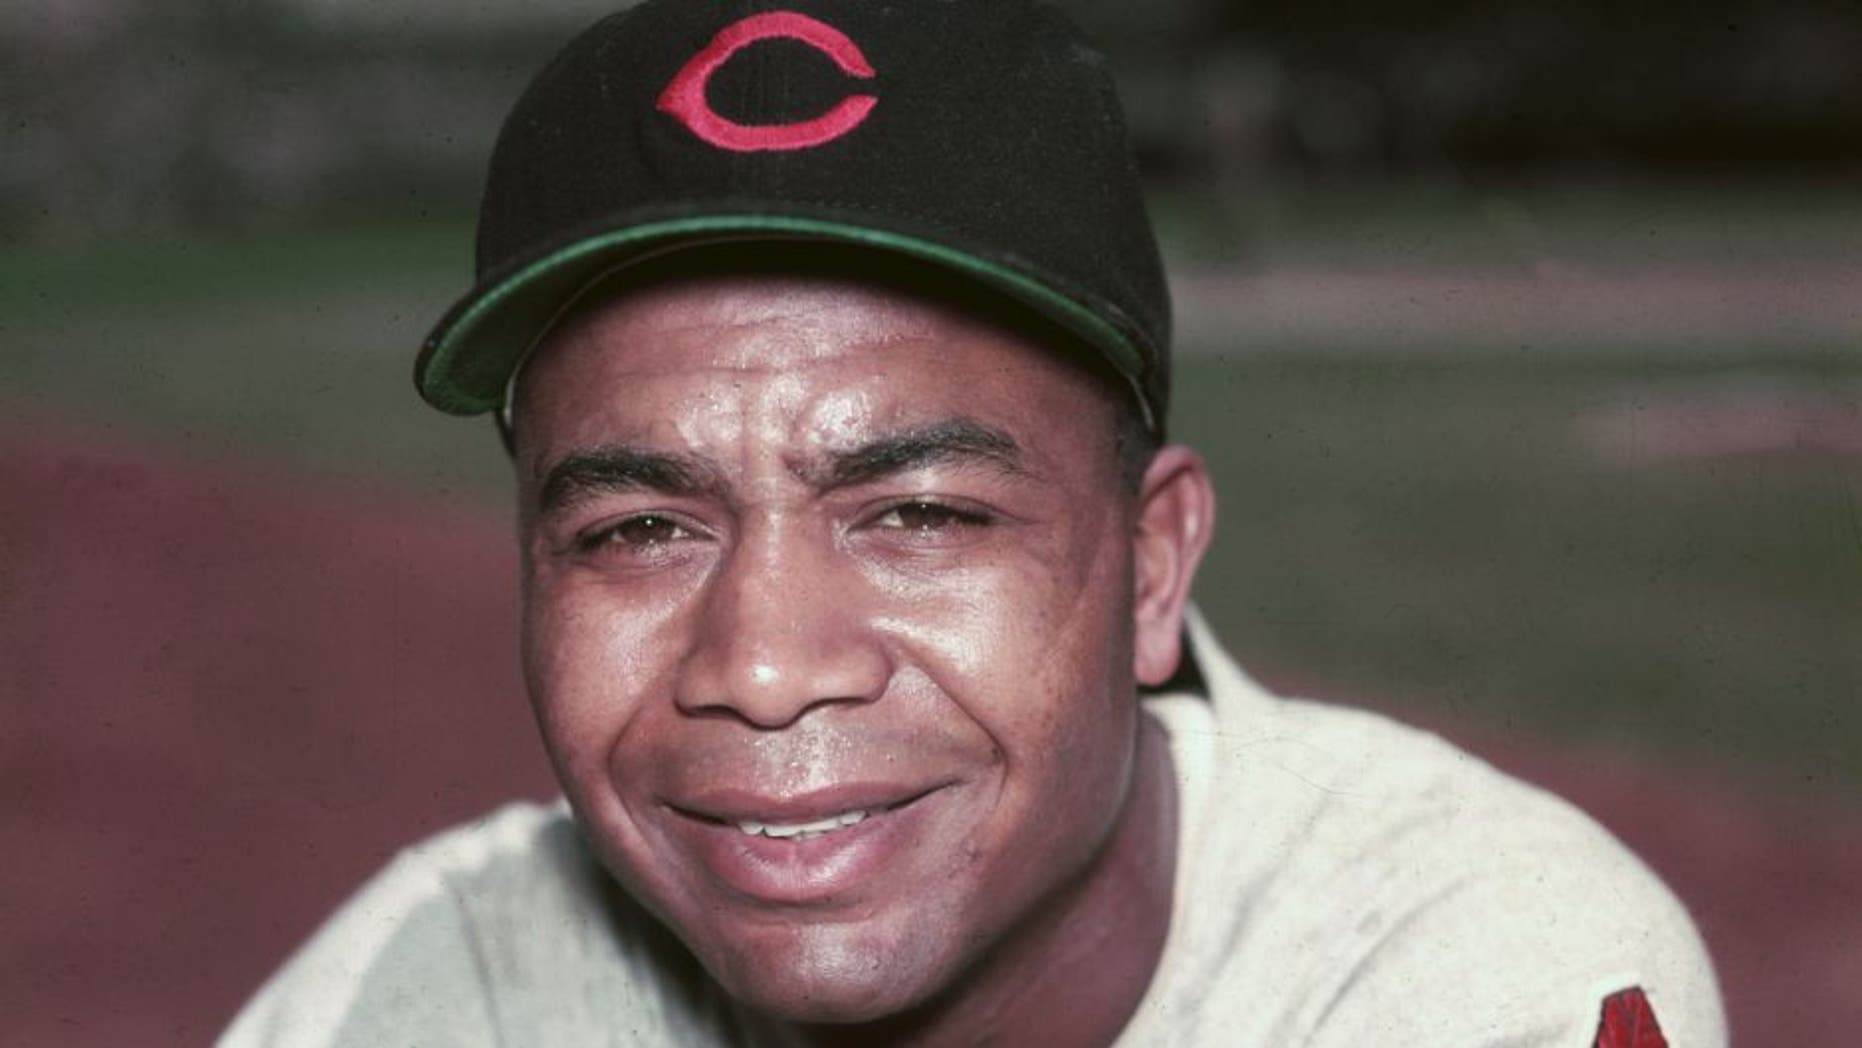 circa 1955: Portrait of Larry Doby, the first African-American player in the American League, wearing his Cleveland Indians uniform. Doby played outfield for the Indians from 1947-1959. (Photo by Hulton Archive/Getty Images)